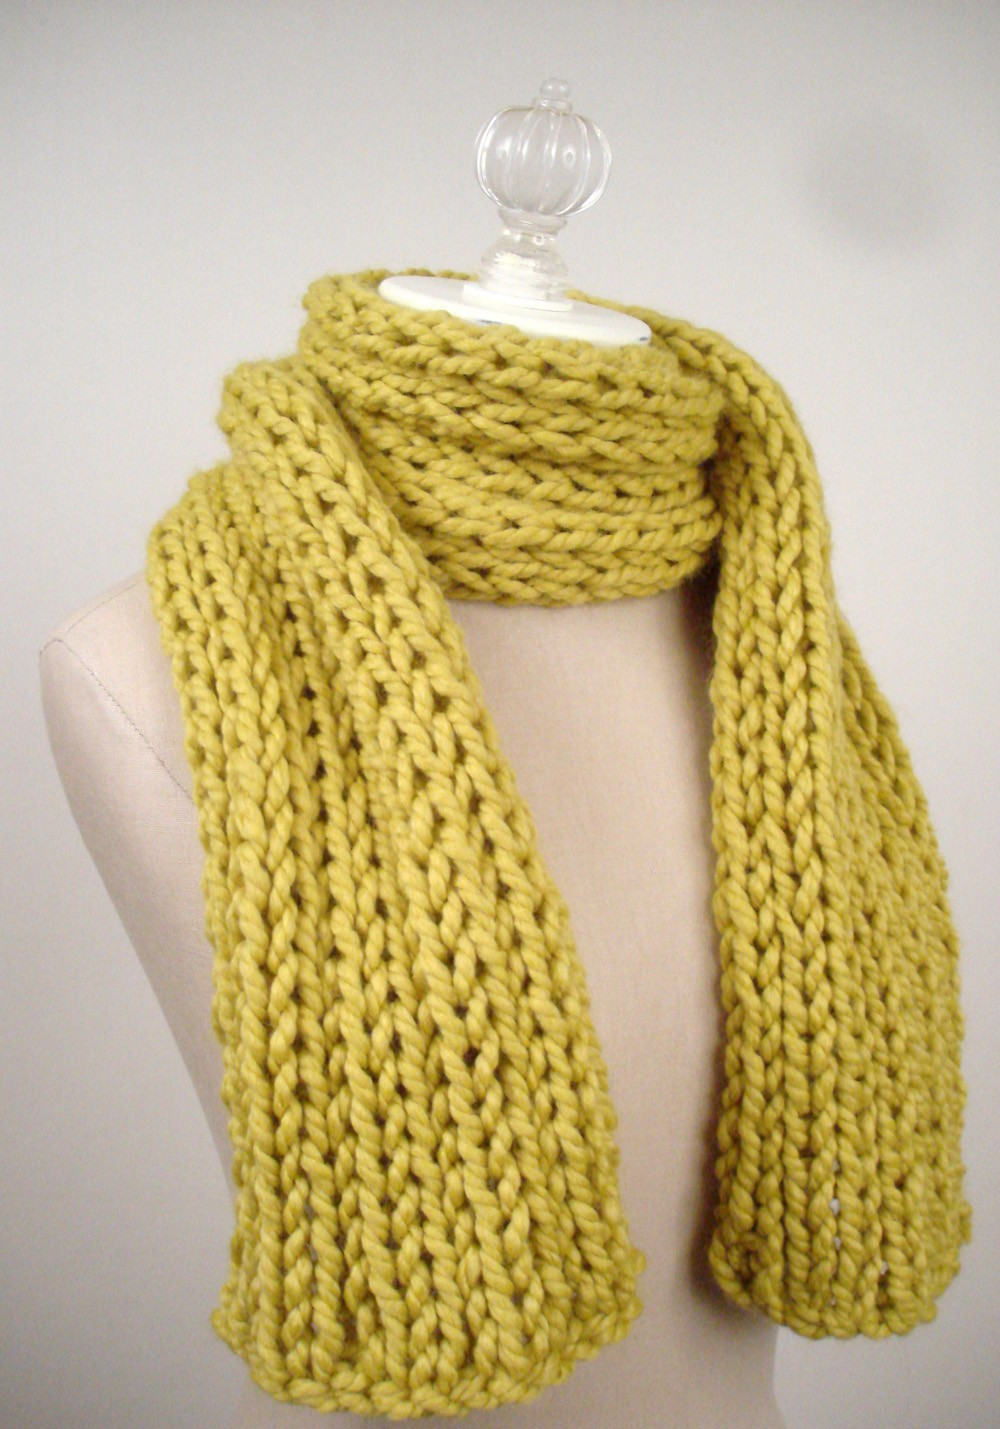 Elegant Scarf Knitting Patterns You Have Been Looking for Easy Scarf Knitting Patterns for Beginners Of Adorable 49 Ideas Easy Scarf Knitting Patterns for Beginners